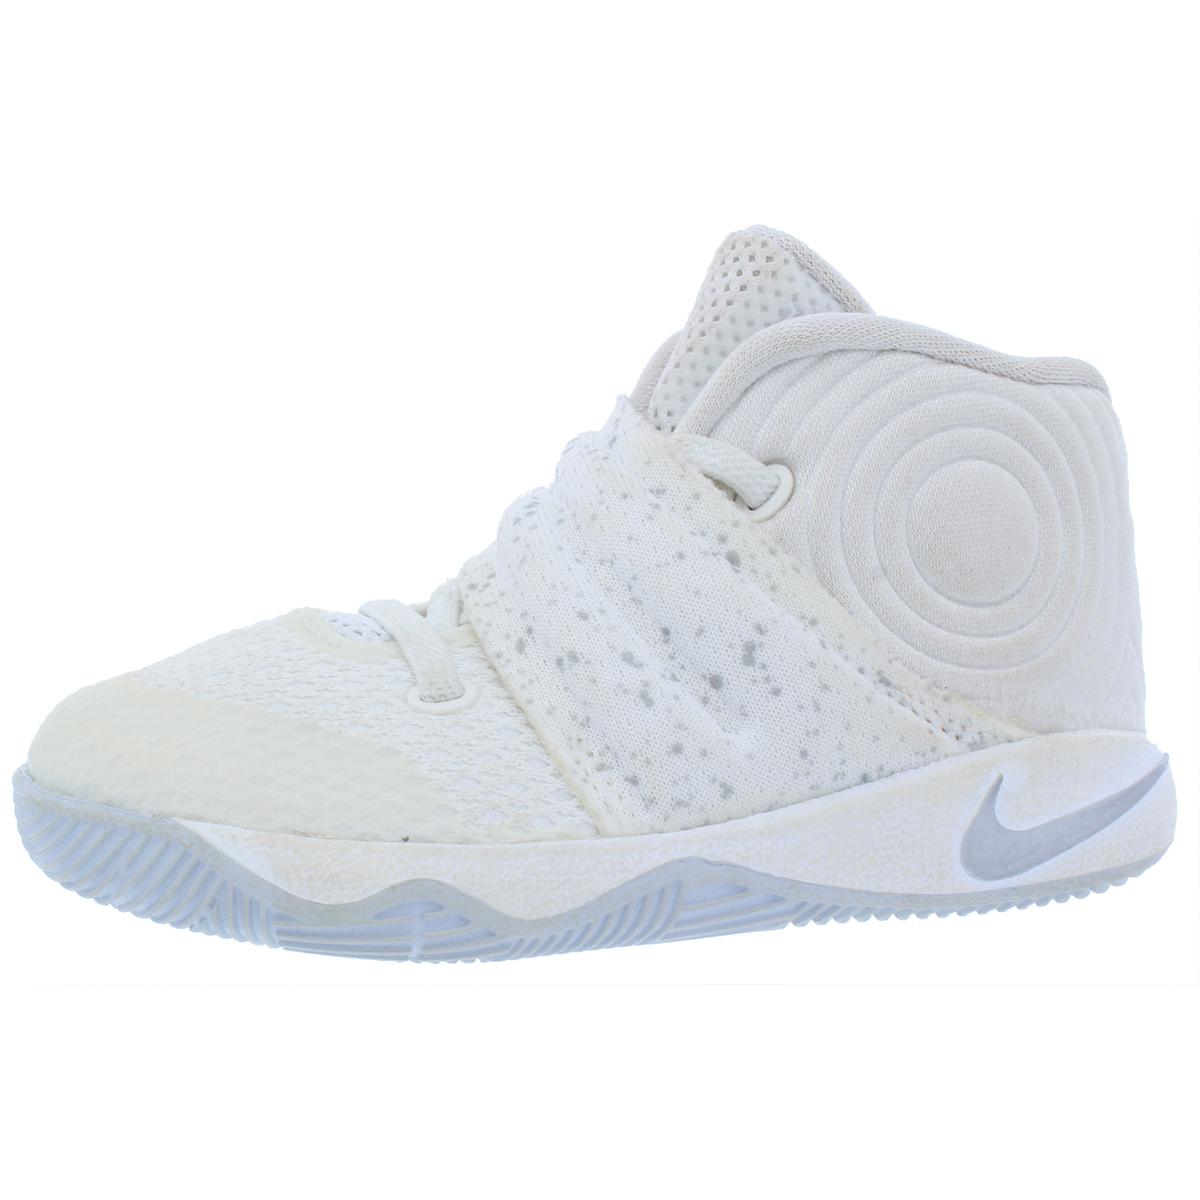 c87ab70f7637 Details about Nike Boys Kyrie 2 (TD) White Basketball Shoes 7 Medium (D)  Toddler BHFO 8521